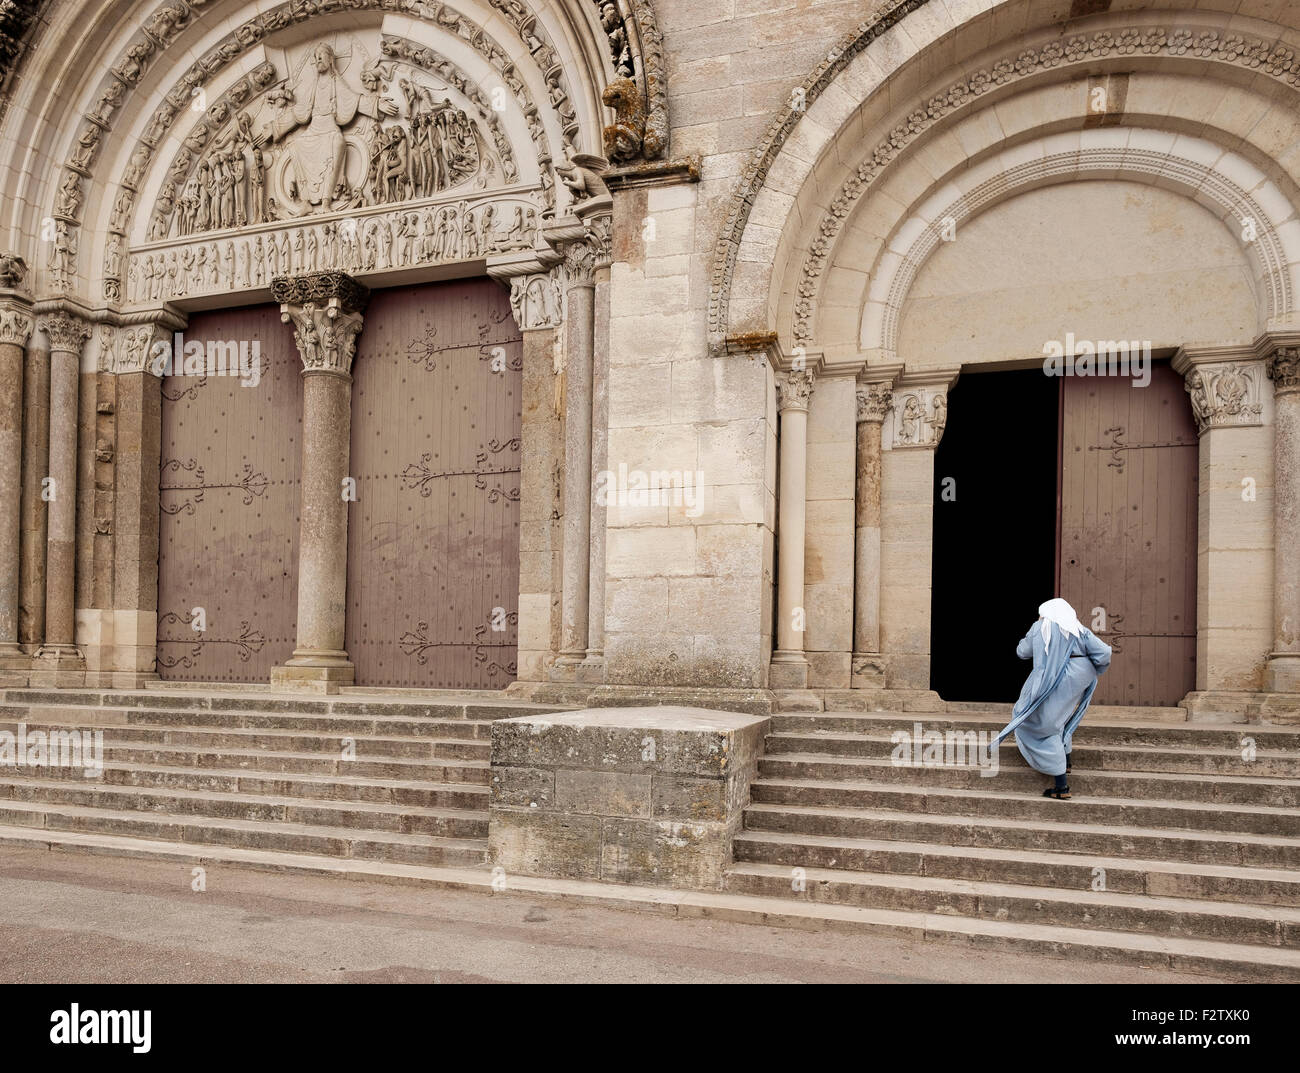 A nun holds her hood in the wind as she hurries across the square in front of the Abbey of Vézelay, the Basilica - Stock Image